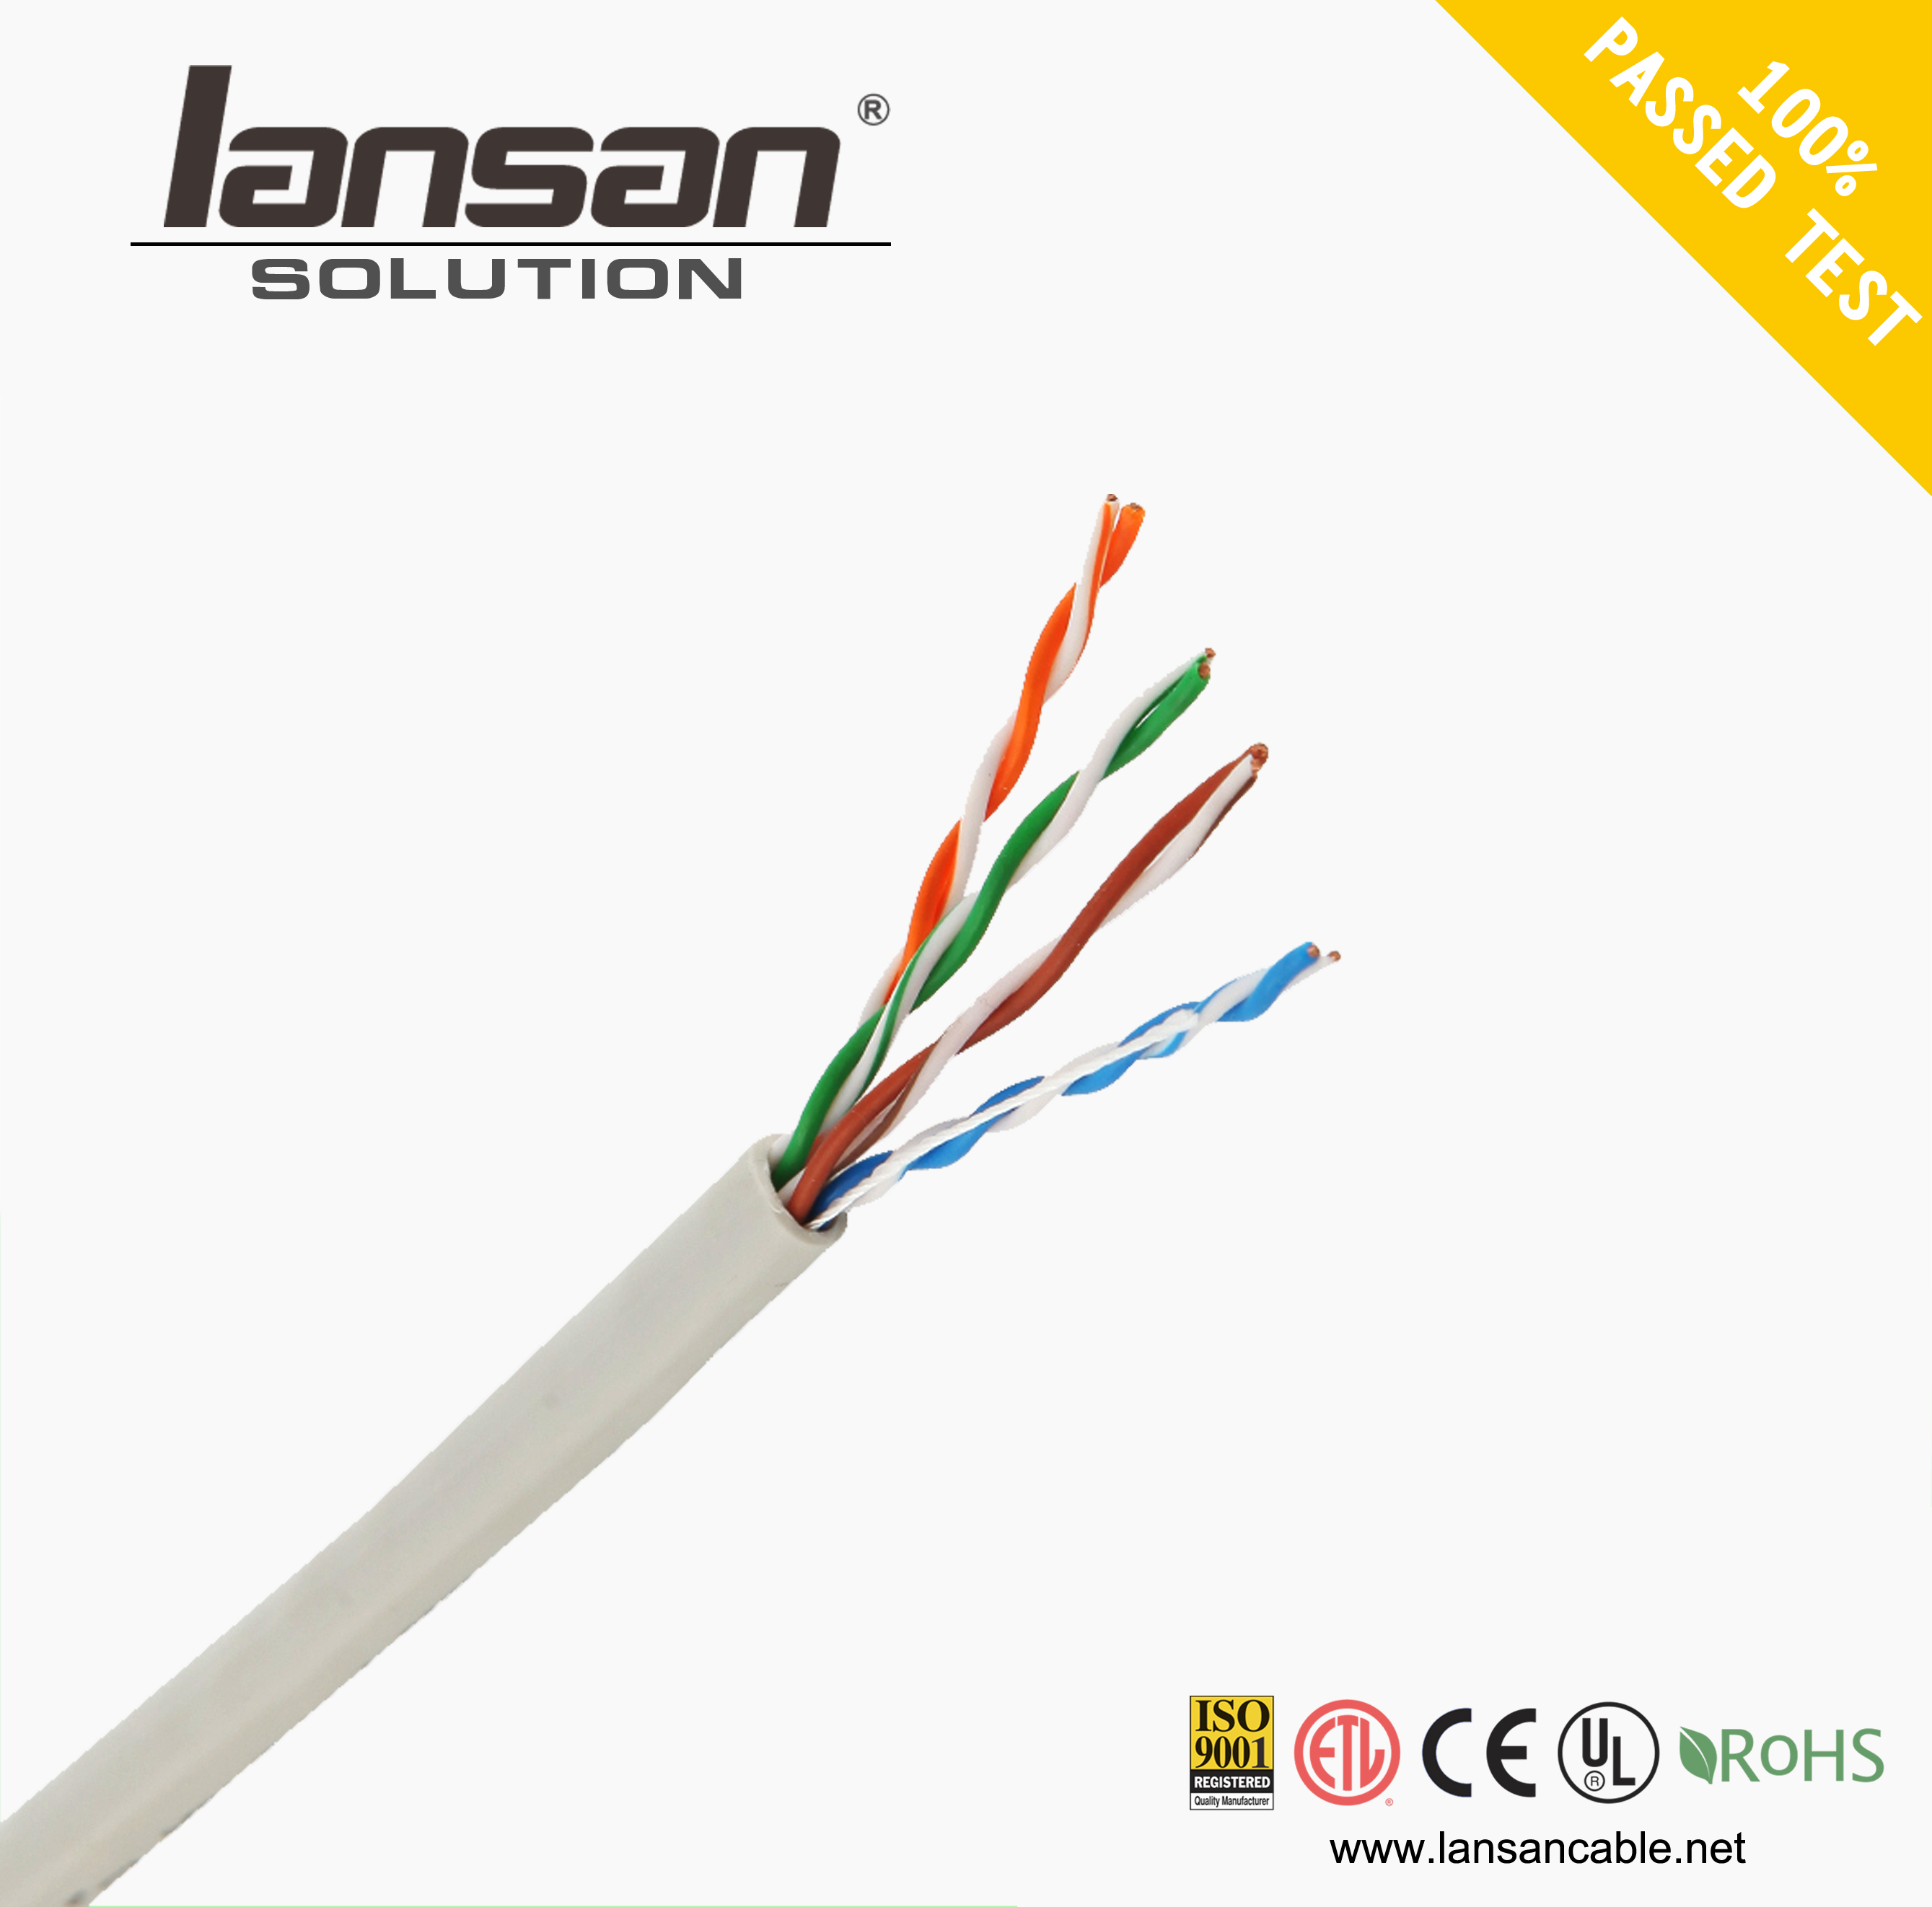 advantage product pass 90m perm link testing Utp Cat5e Lan Cable CM/CMR/CMP Plenum With UL Listed Cat 5e 0.48mm Wire cable